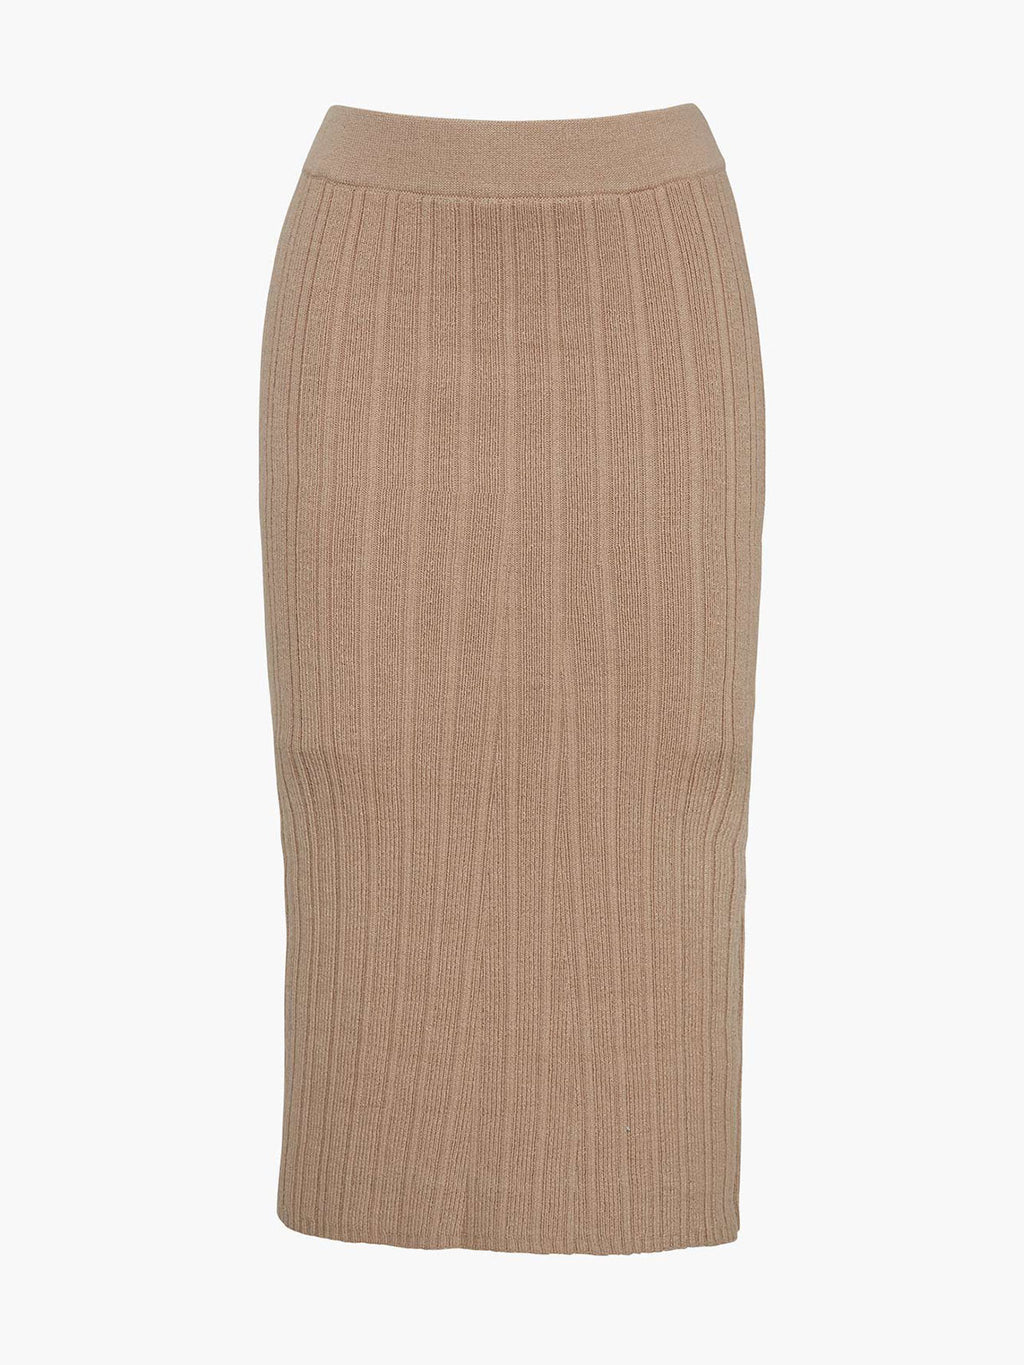 Ava Skirt | Pale Camel